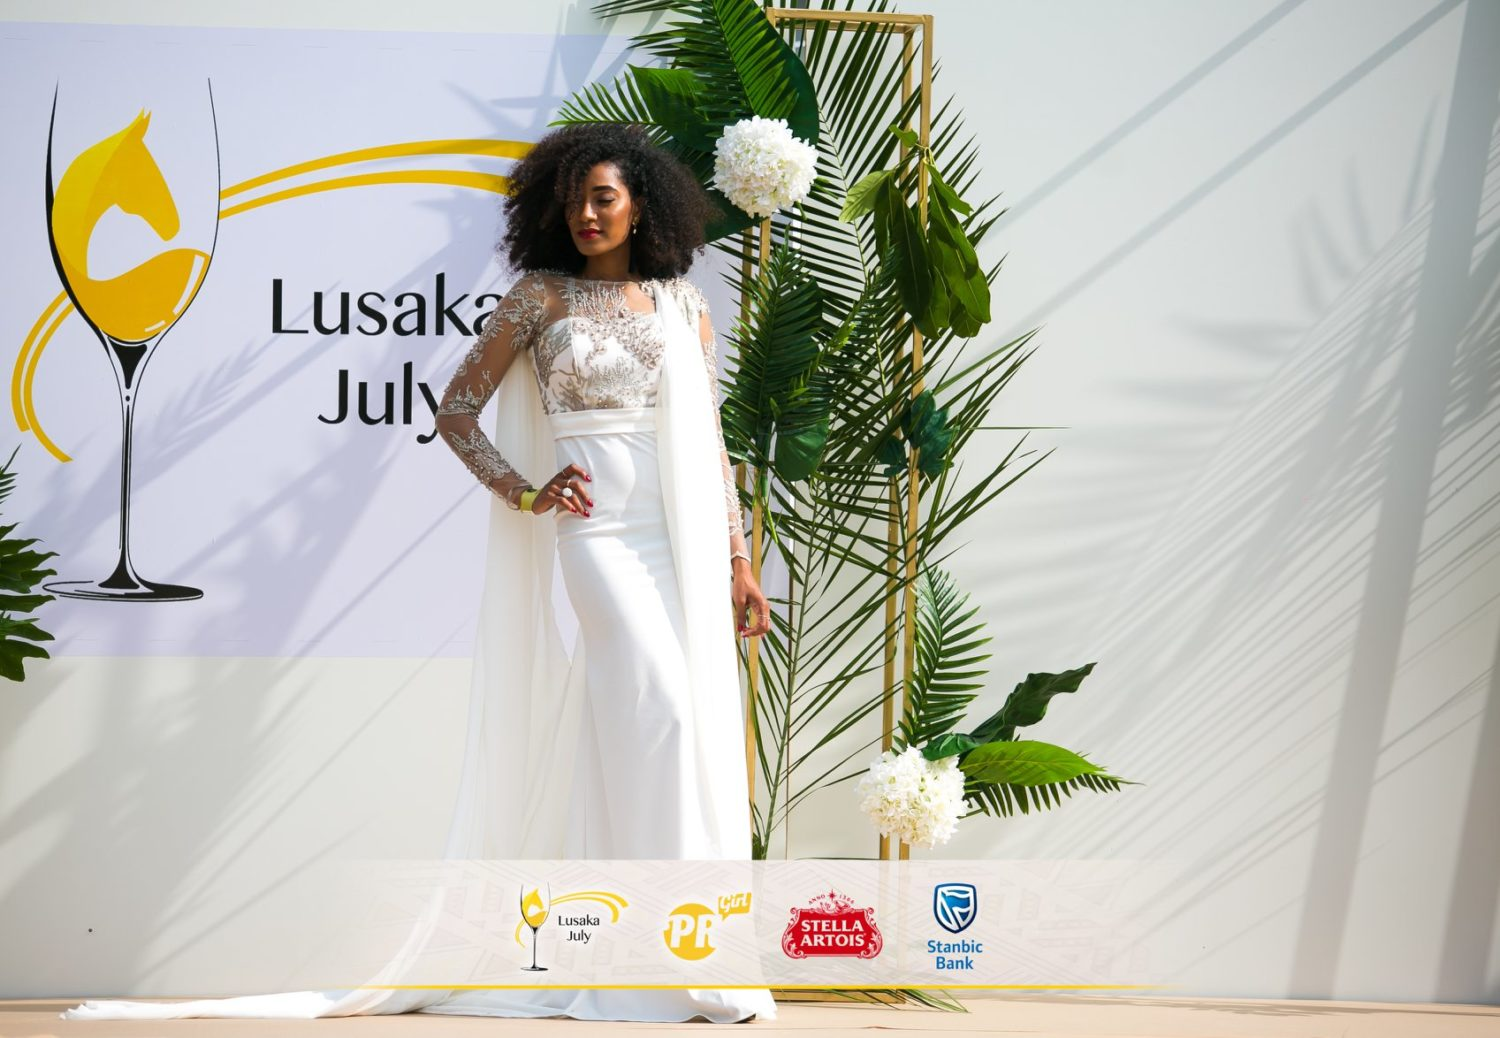 In Zambia, Ex Big Brother Africa Star Dillish Matthews, Maps Maponyane, and More Turn Out to Fete Third Annual Lusaka July